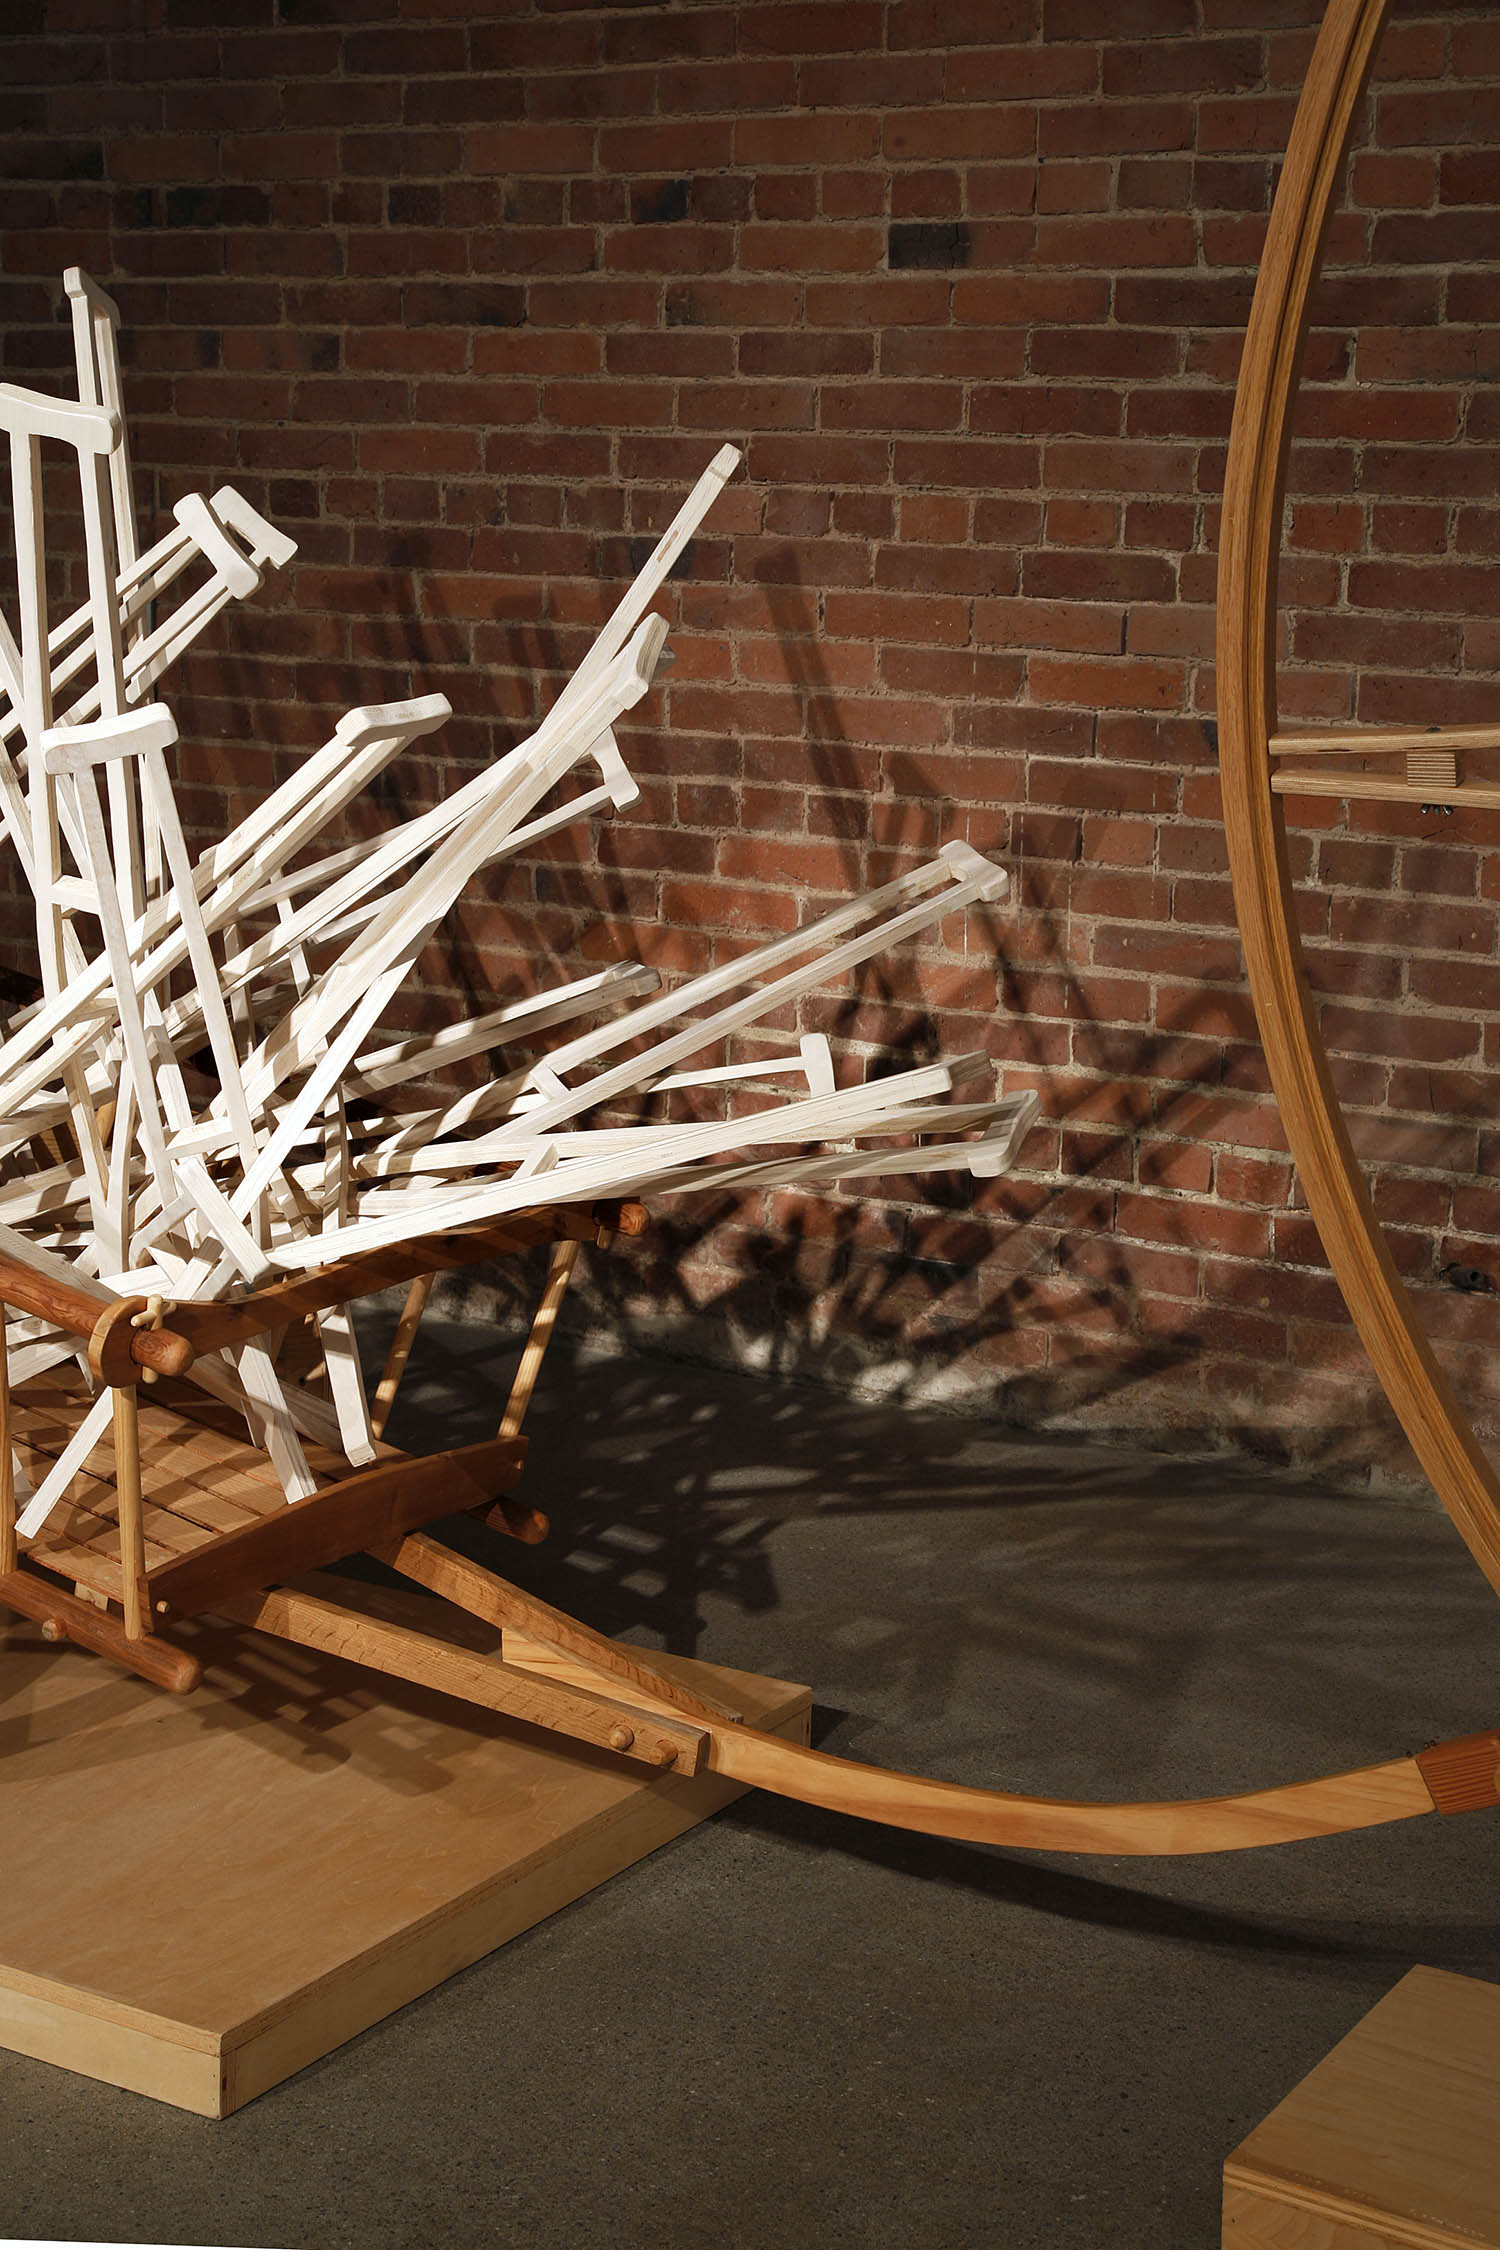 """Fade"" (detail view), 2015, 8' h x 15' w x 3' d, wood, stain; © Tom Gormally"